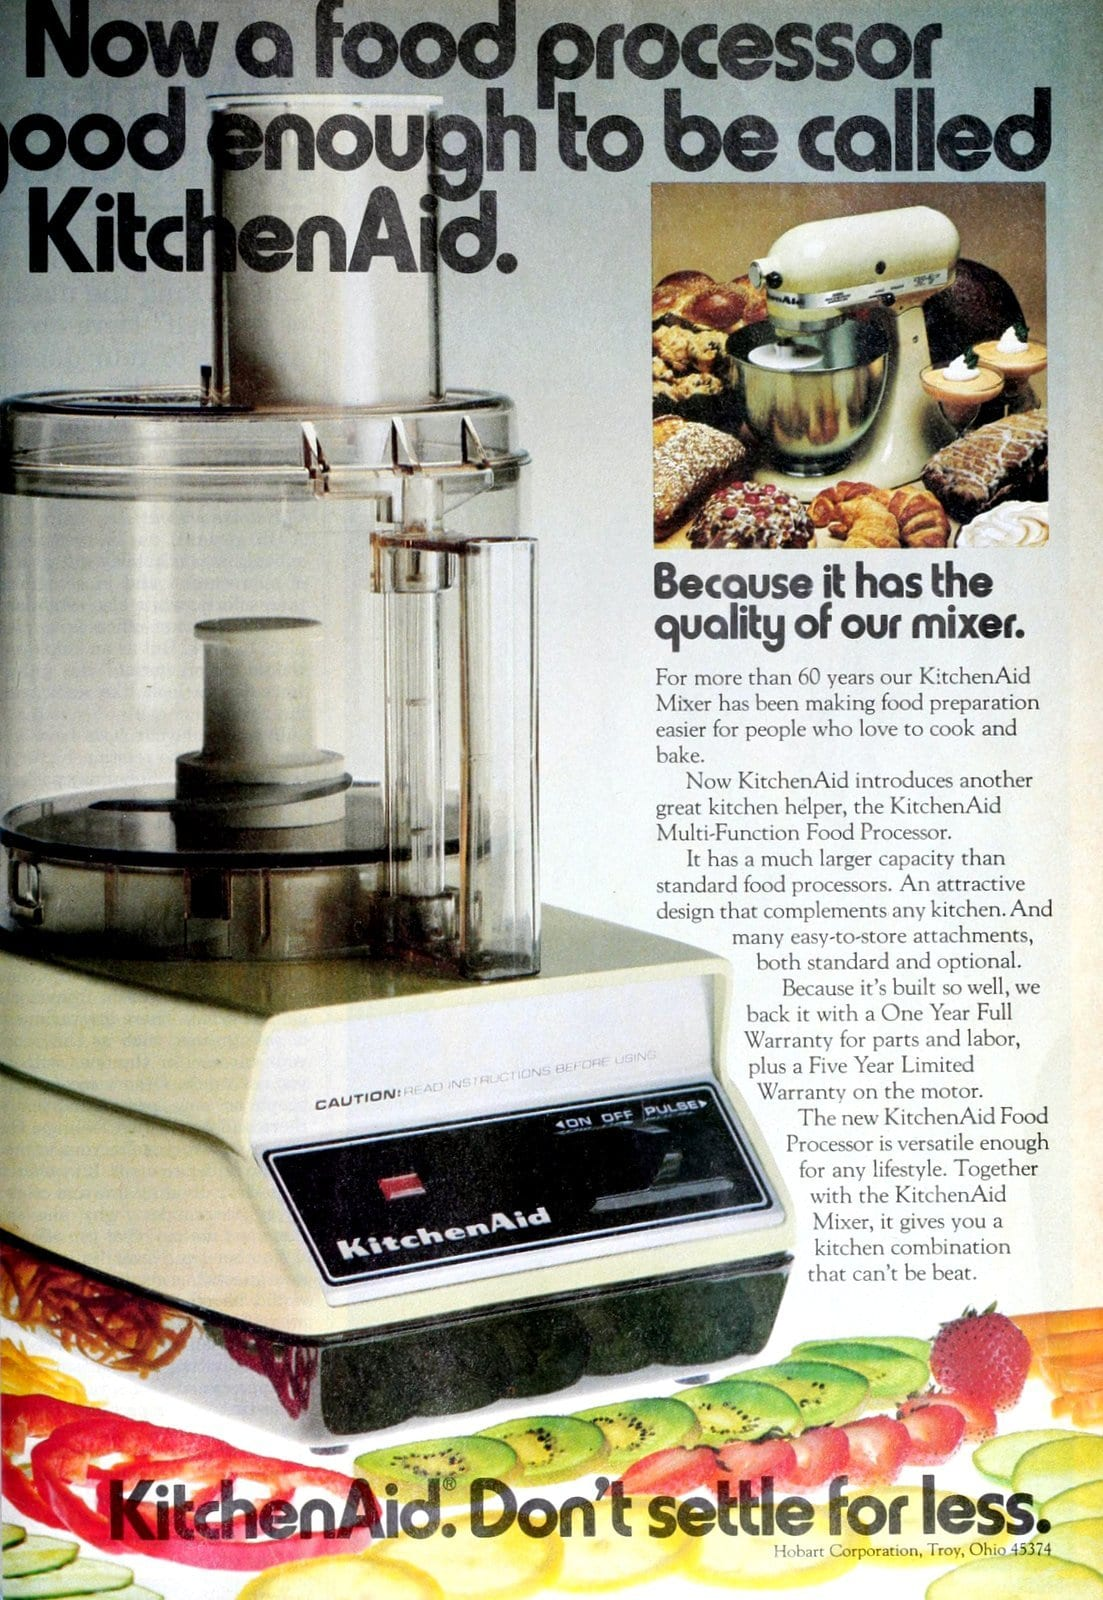 Vintage 80s Kitchen Aid Multi-Function Food Processor (1982)